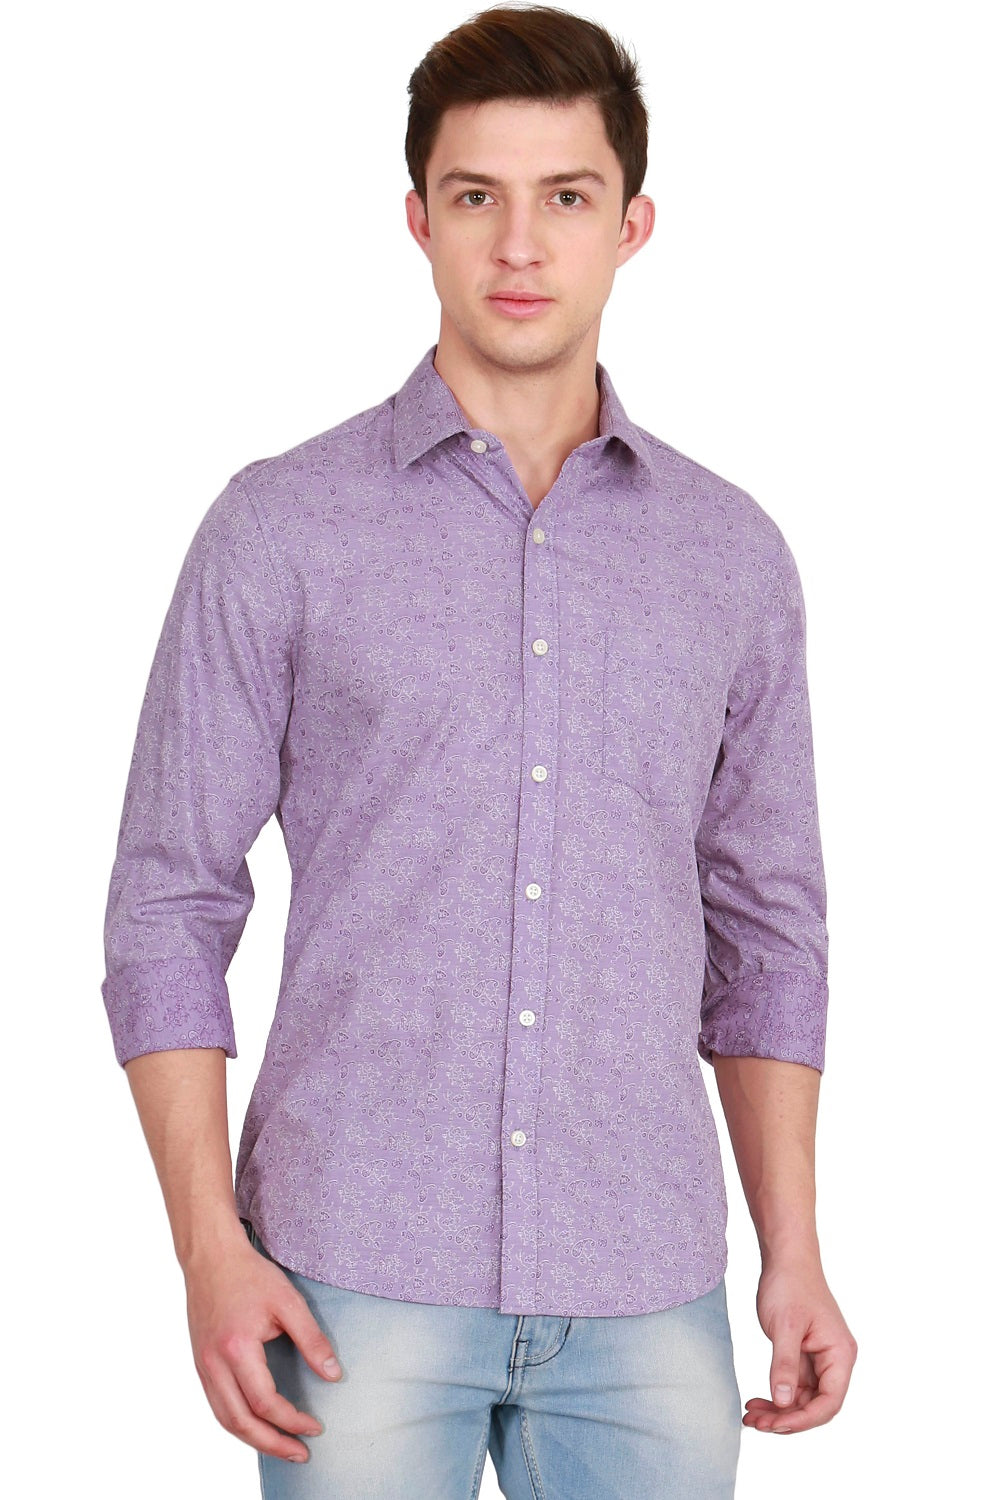 IMYOUNG Purple Solid Slim Fit Casual Shirt